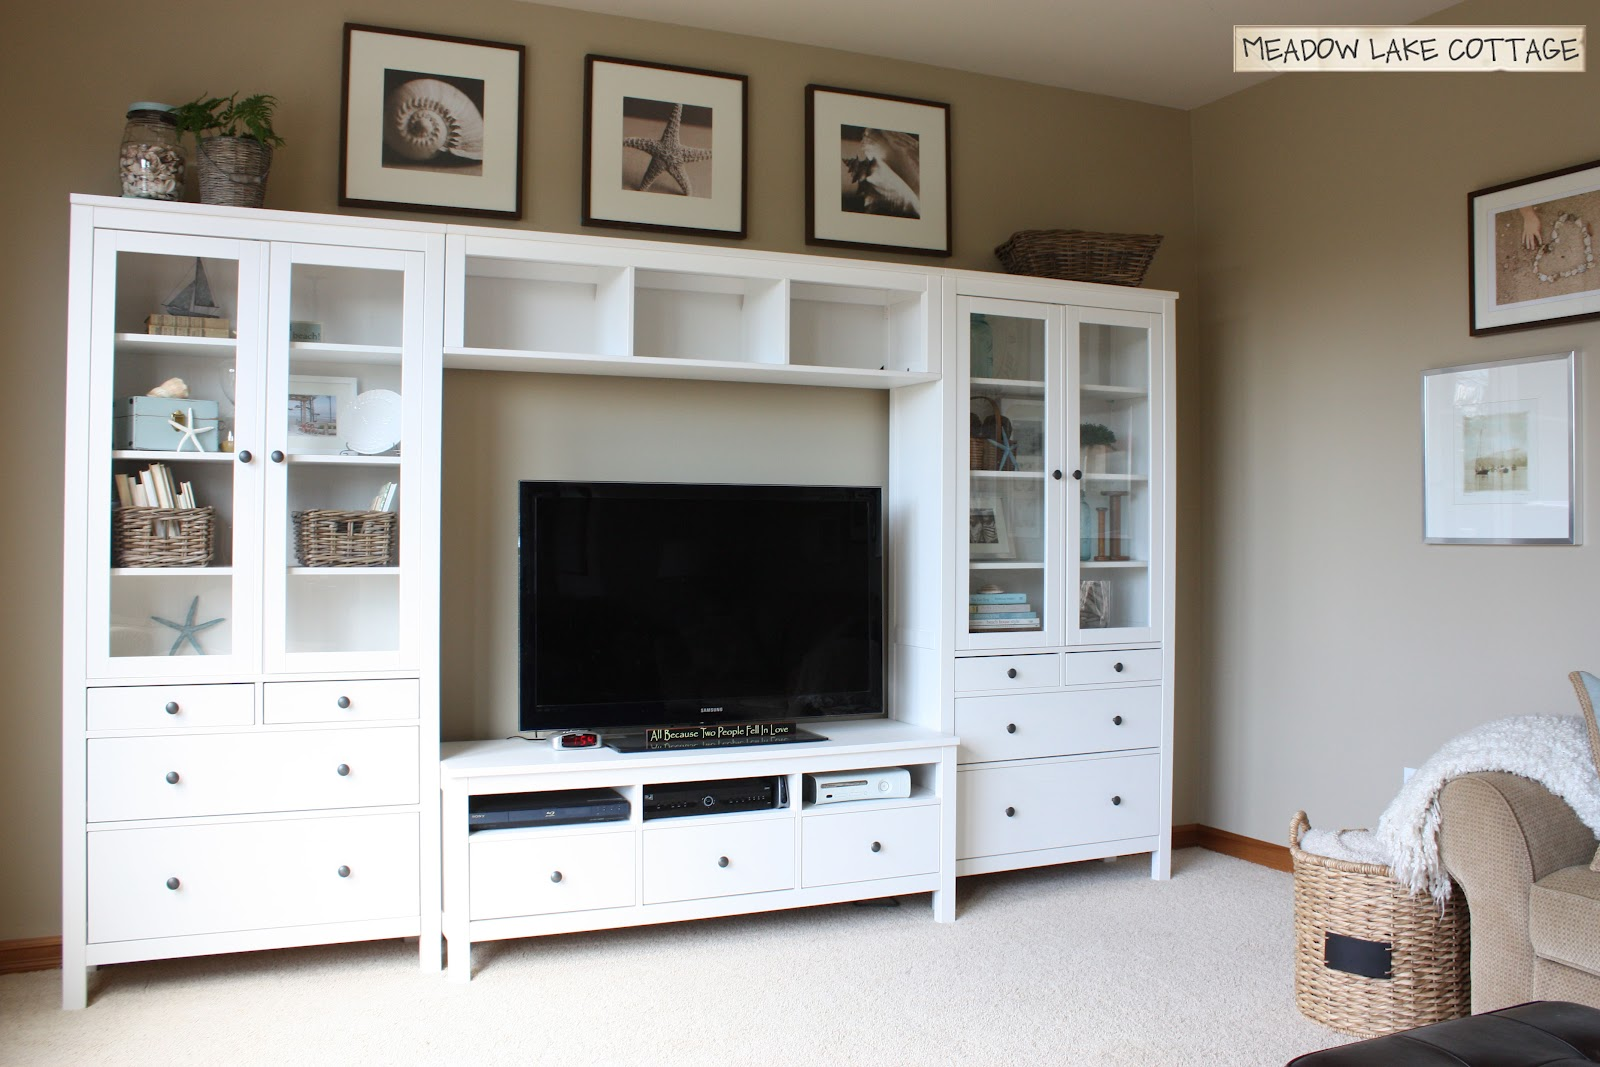 The 20 best images about ikea on pinterest bookcases bookends and living rooms